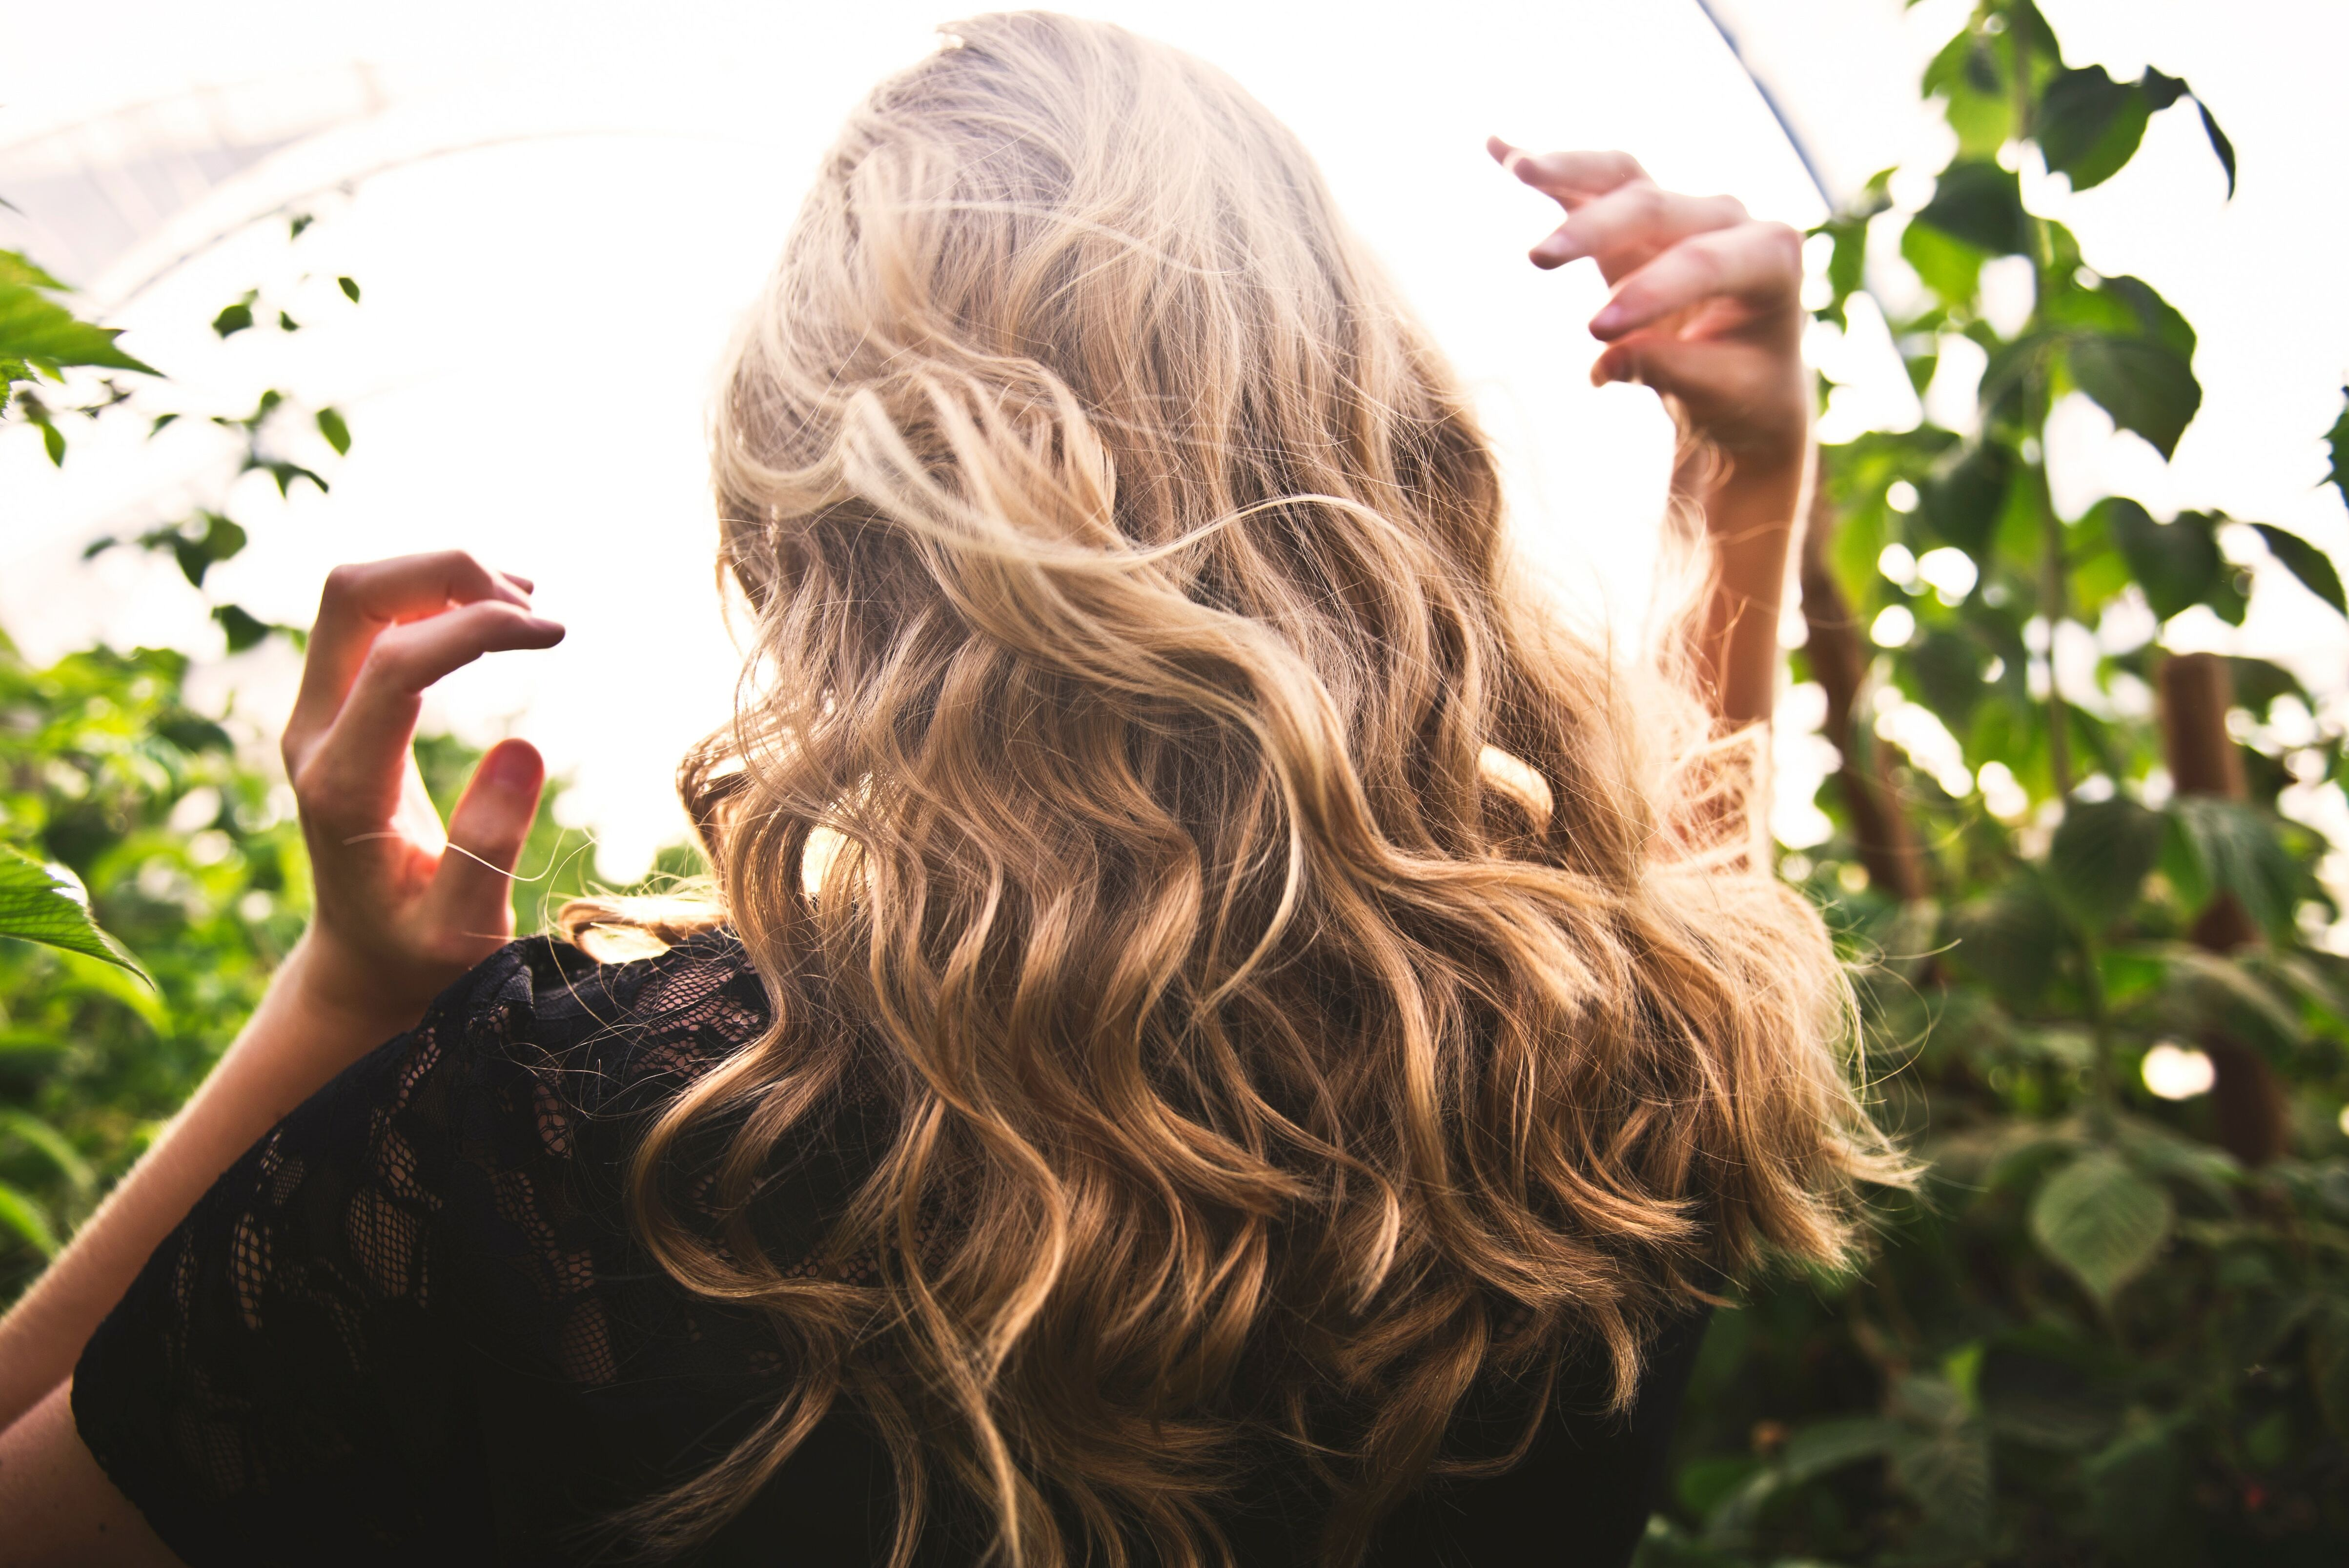 Back of woman's head with blonde hair surrounded by greenery